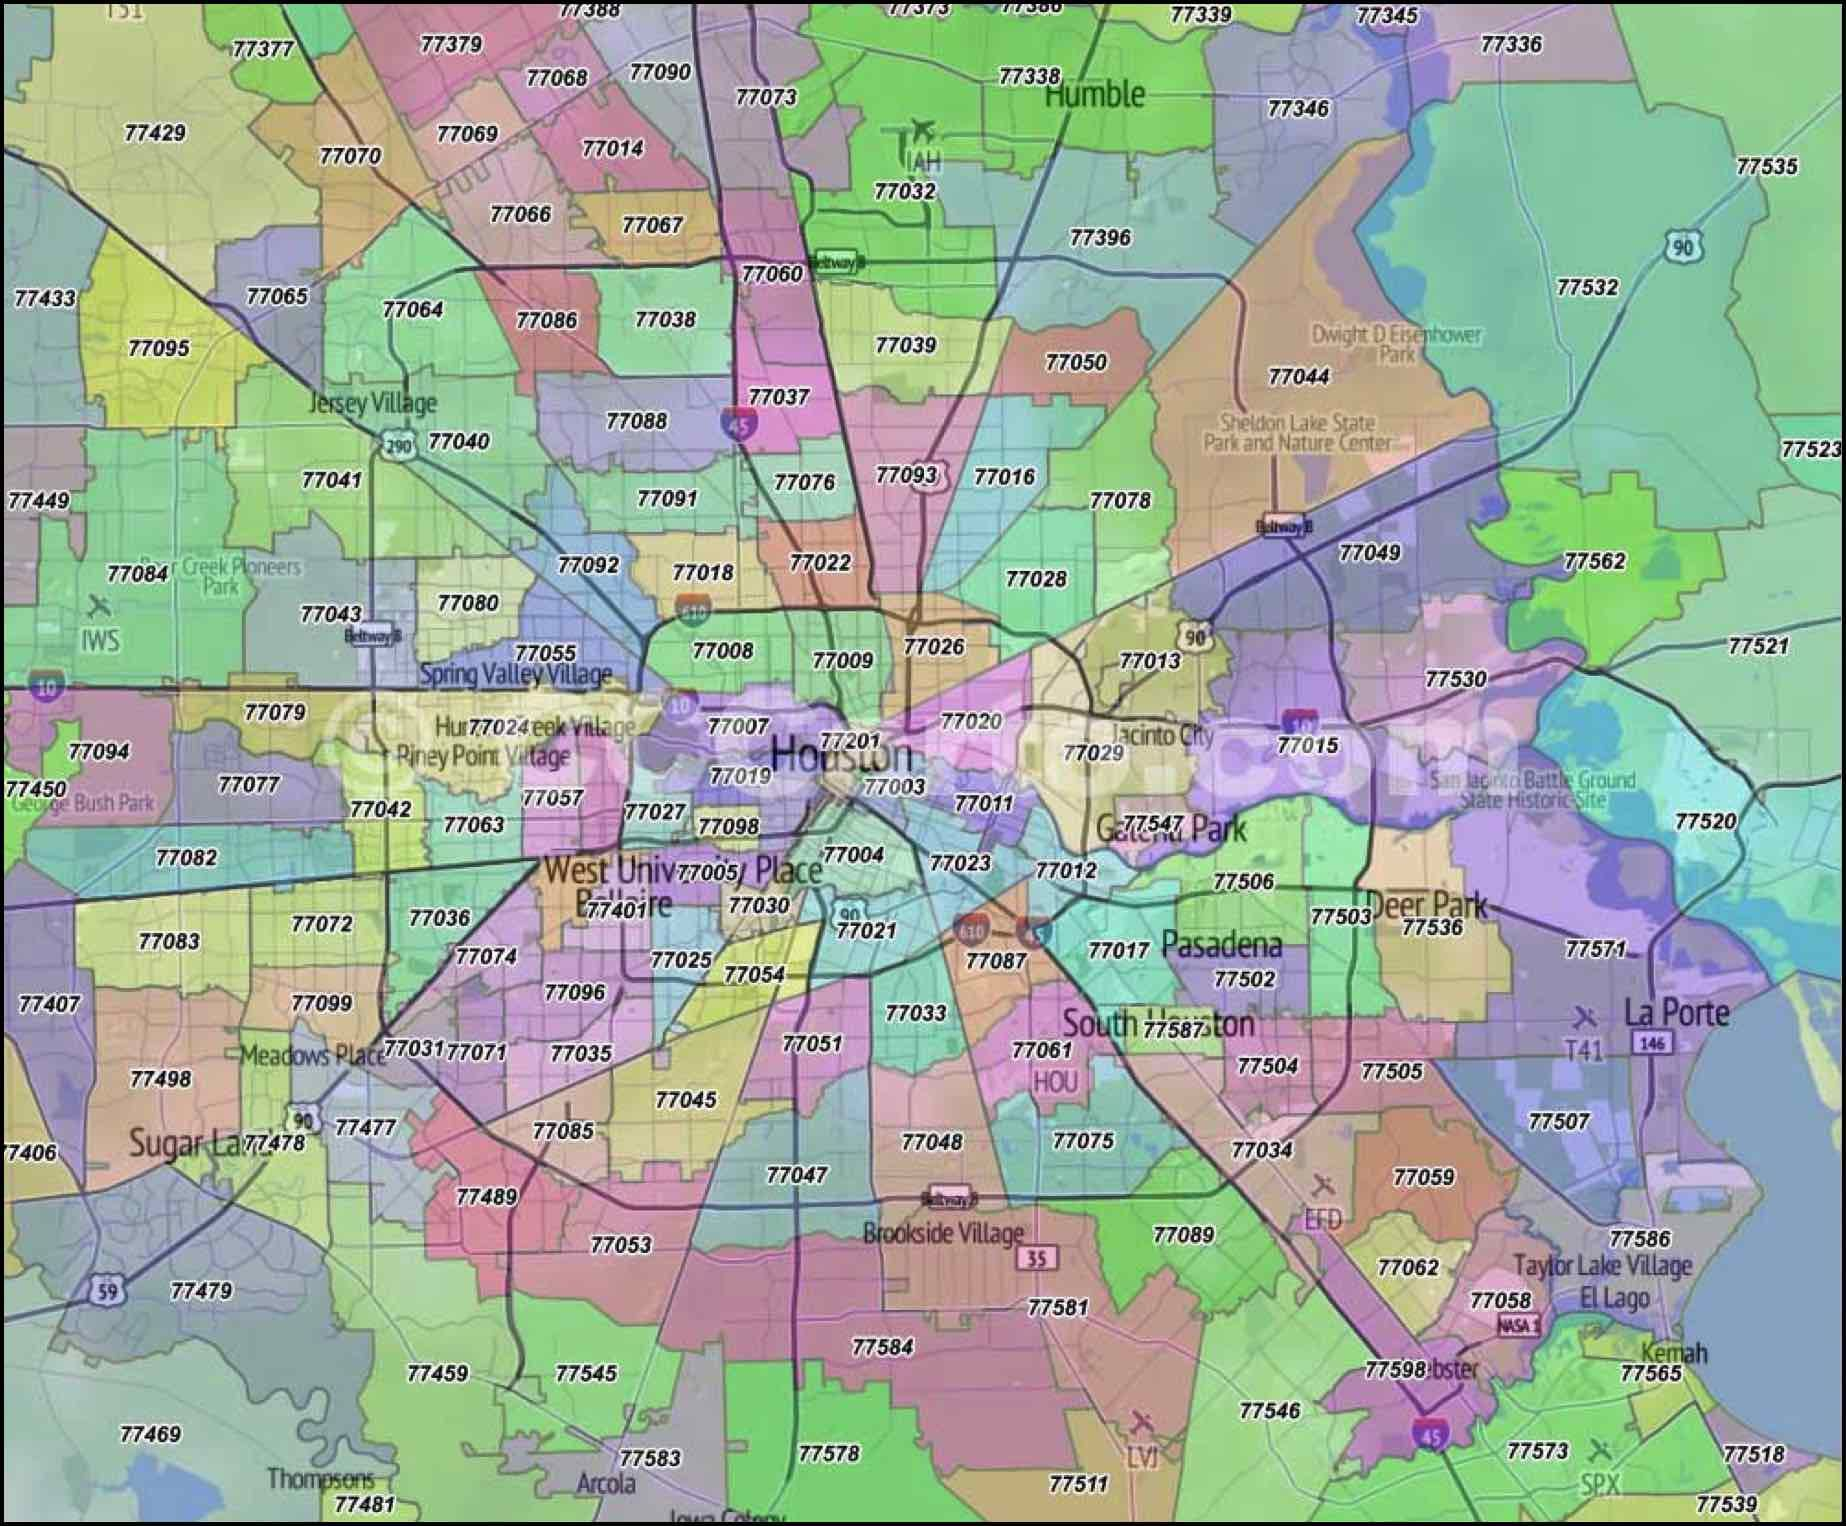 Houston Map With Zip Code Houston Zip Code Map | Houston zip code map, Zip code map, Houston map